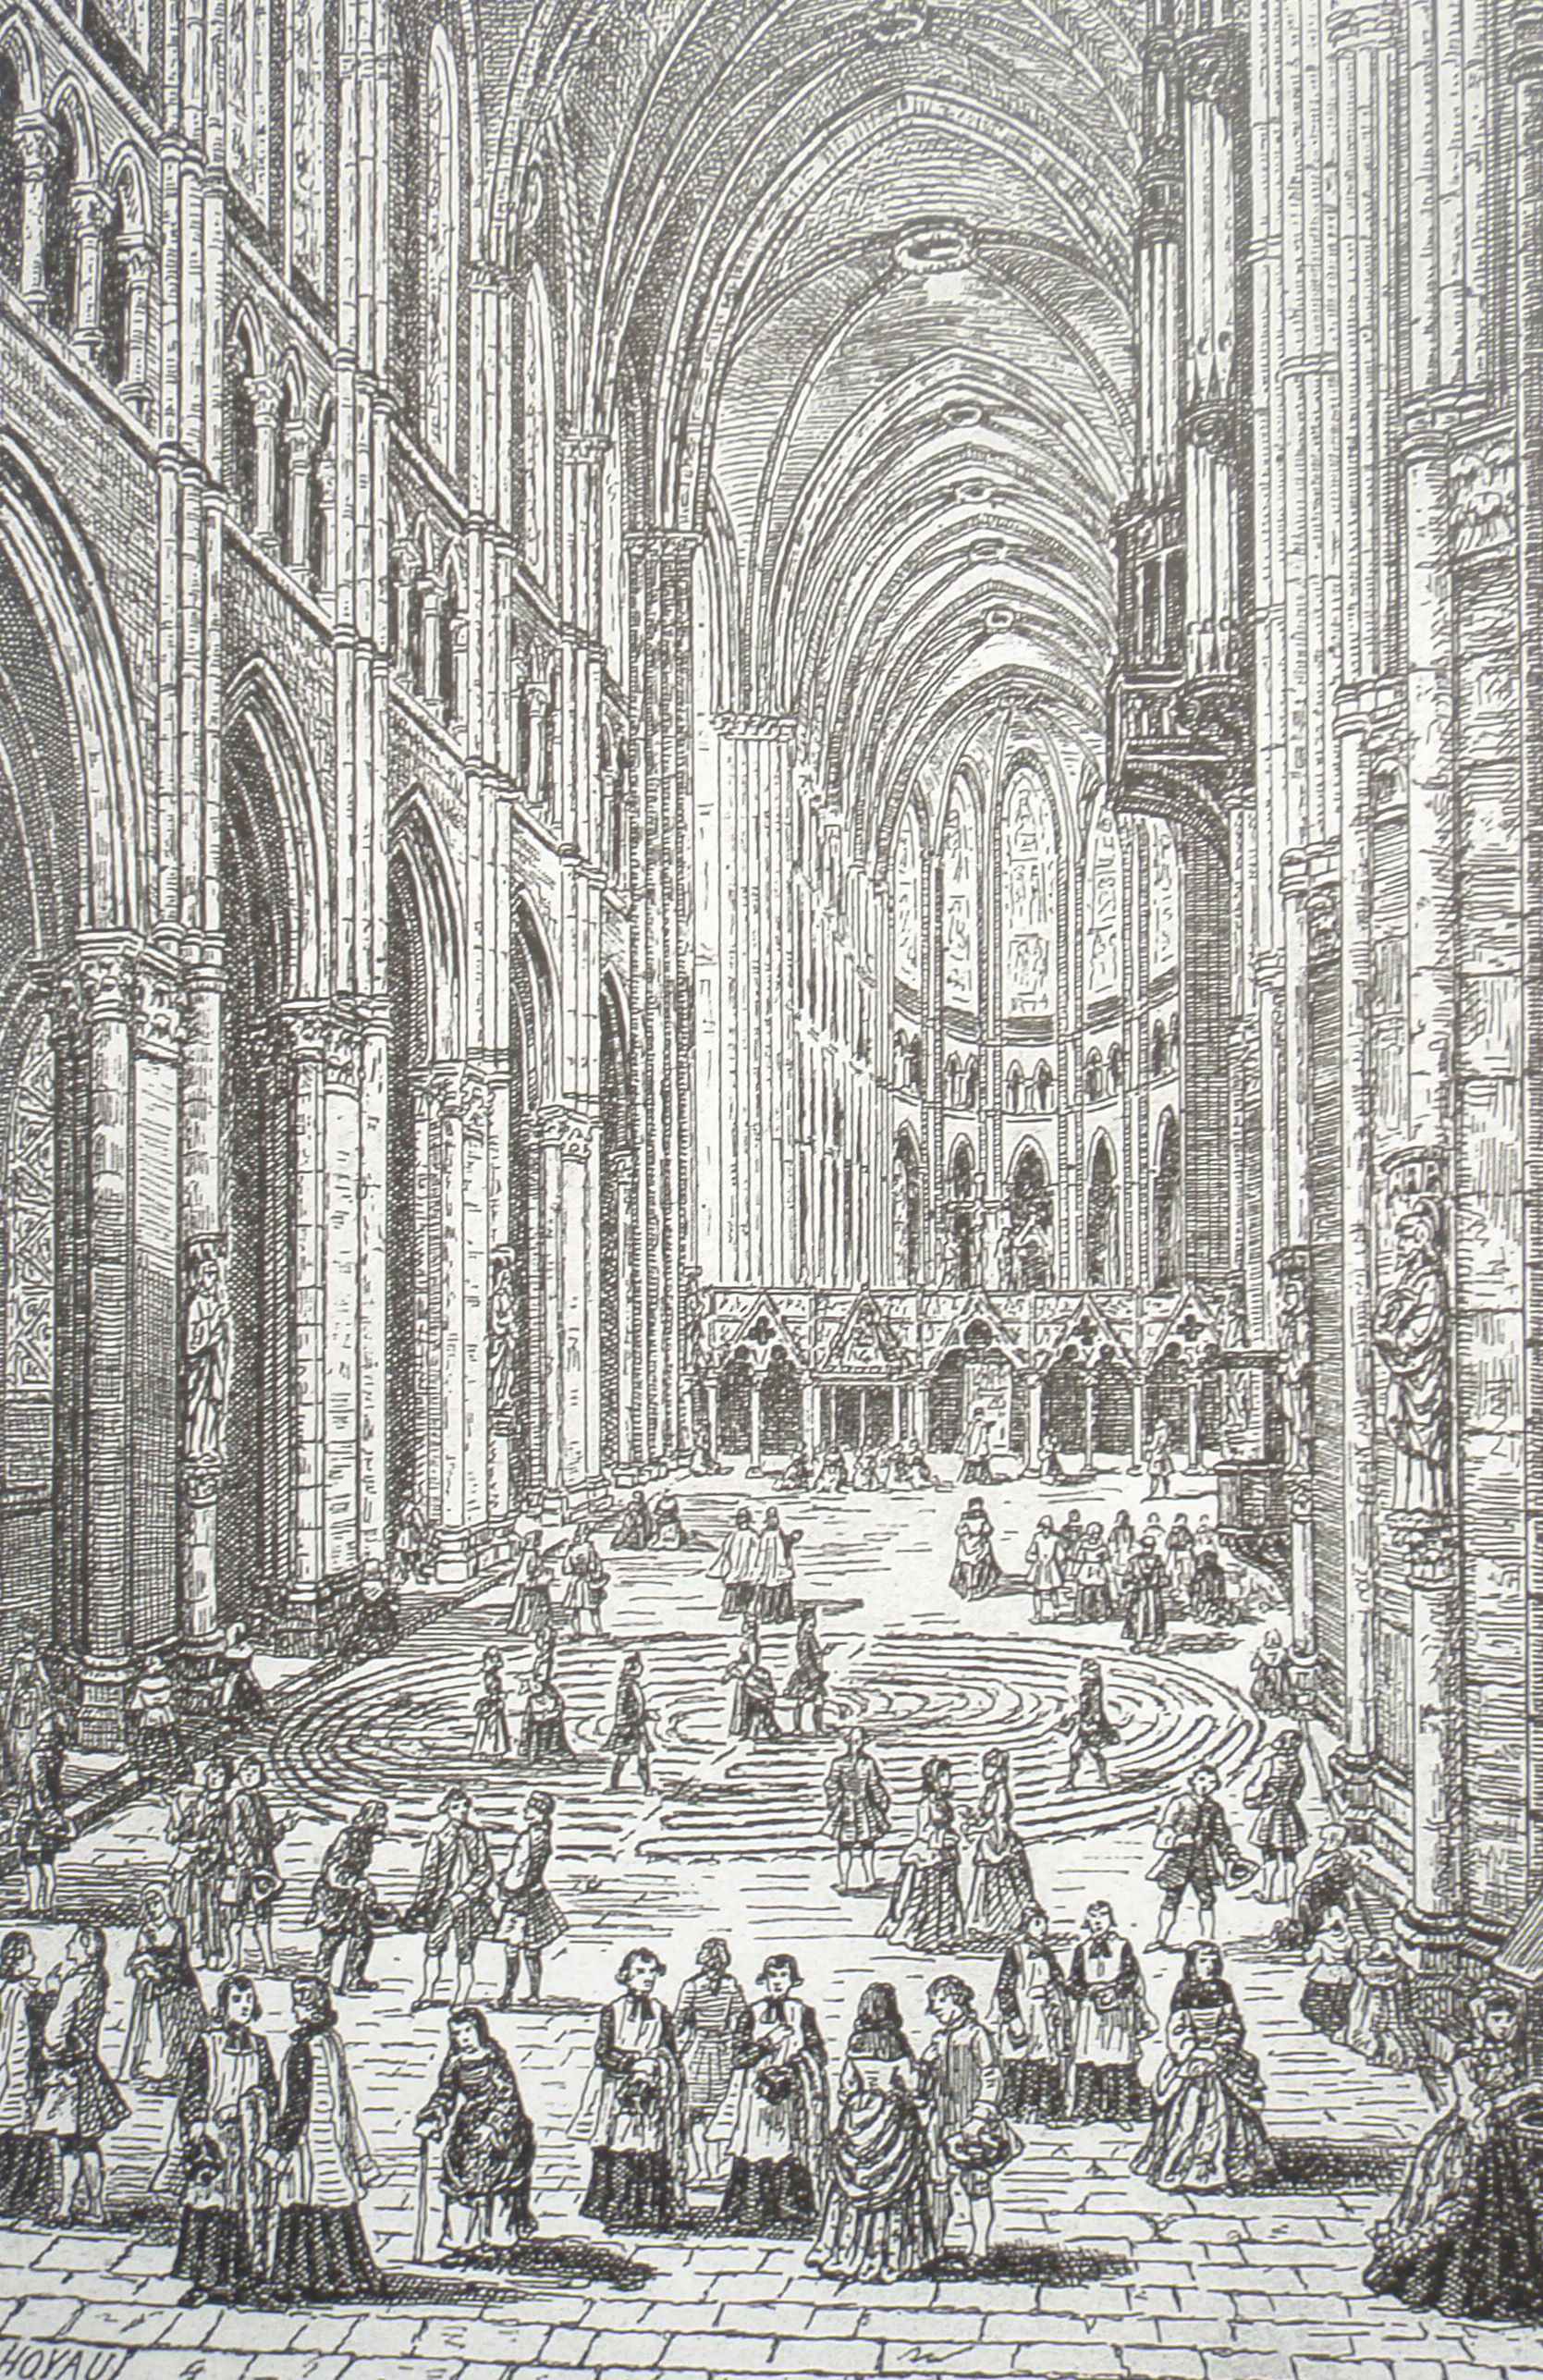 http://upload.wikimedia.org/wikipedia/commons/2/20/Inneres_der_Kathedrale.jpg